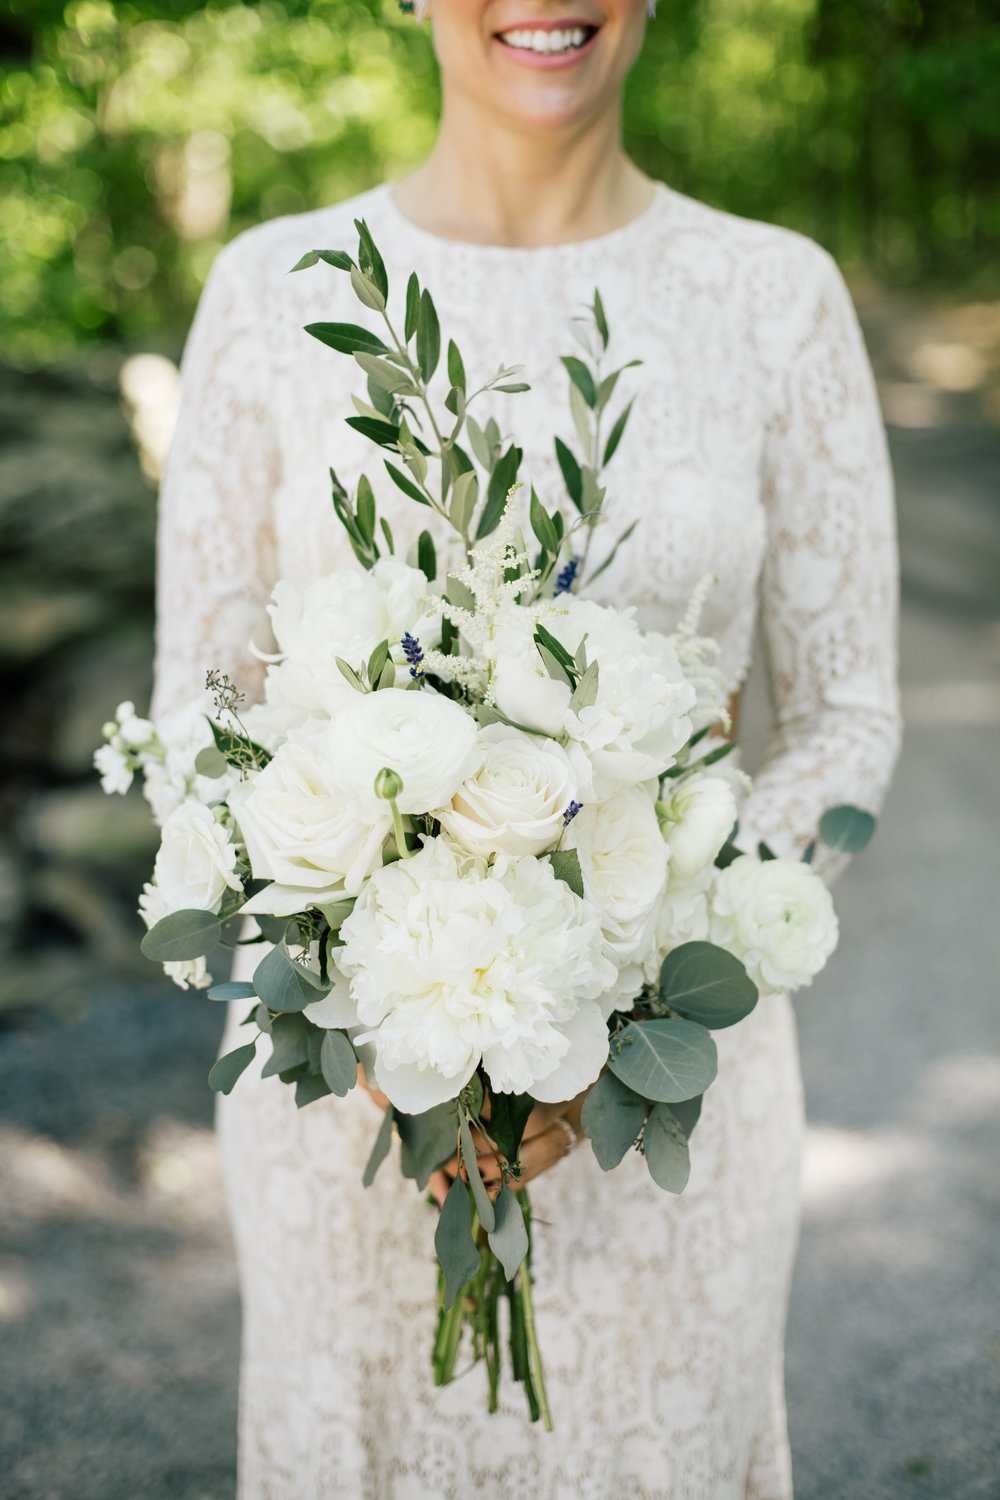 Eucalyptus and rose flower bouquet